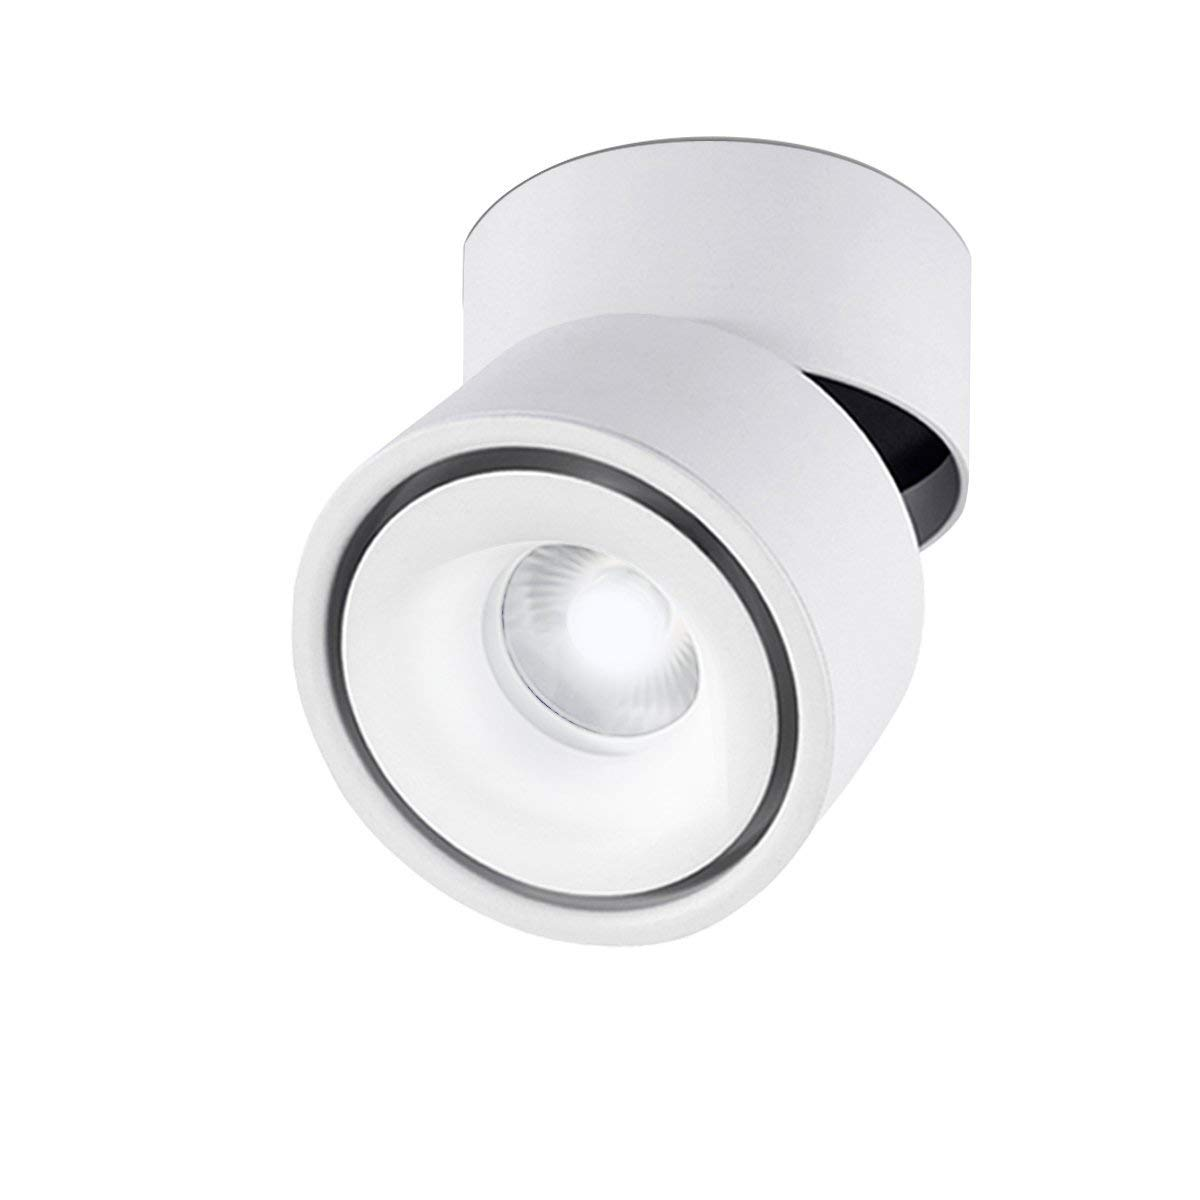 Indoor 10W LED Spotlight 360 degree Adjustable Ceiling Down light Surface Mounted COB Lighting Aluminum Wall